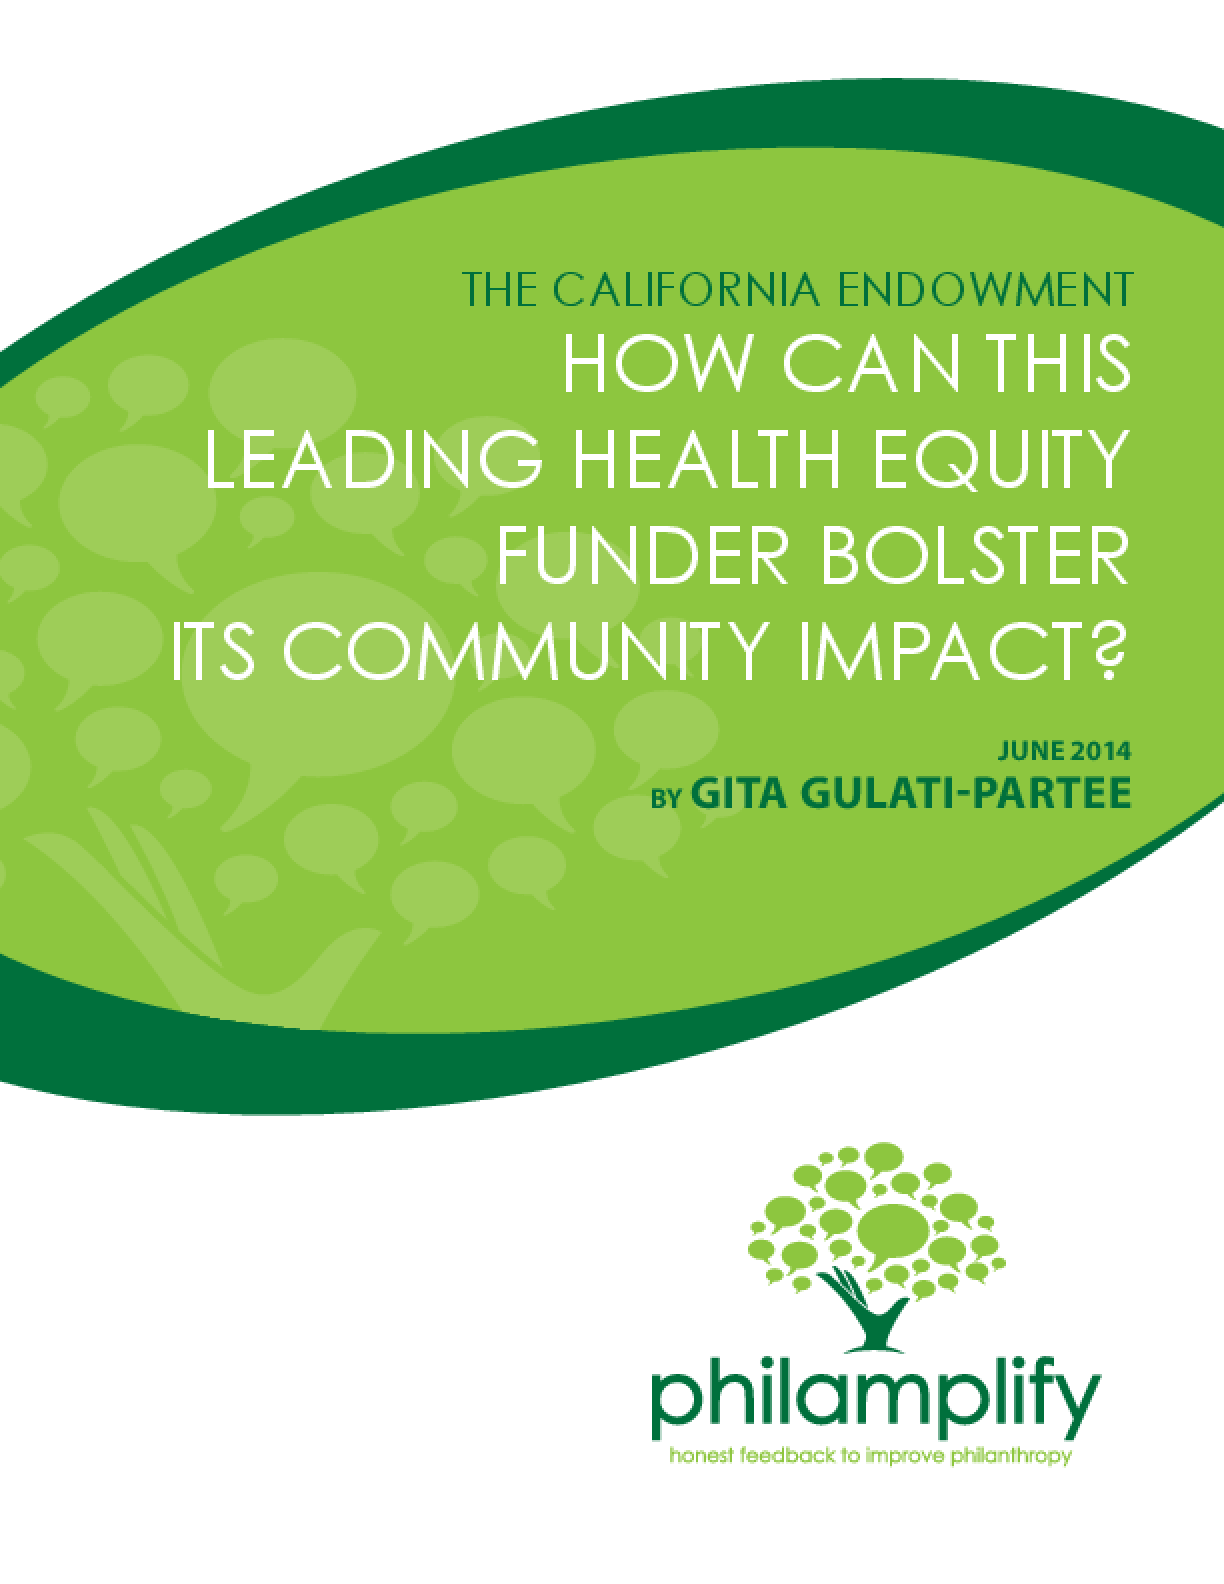 The California Endowment: How Can This Leading Health Equity Funder Bolster Its Community Impact?